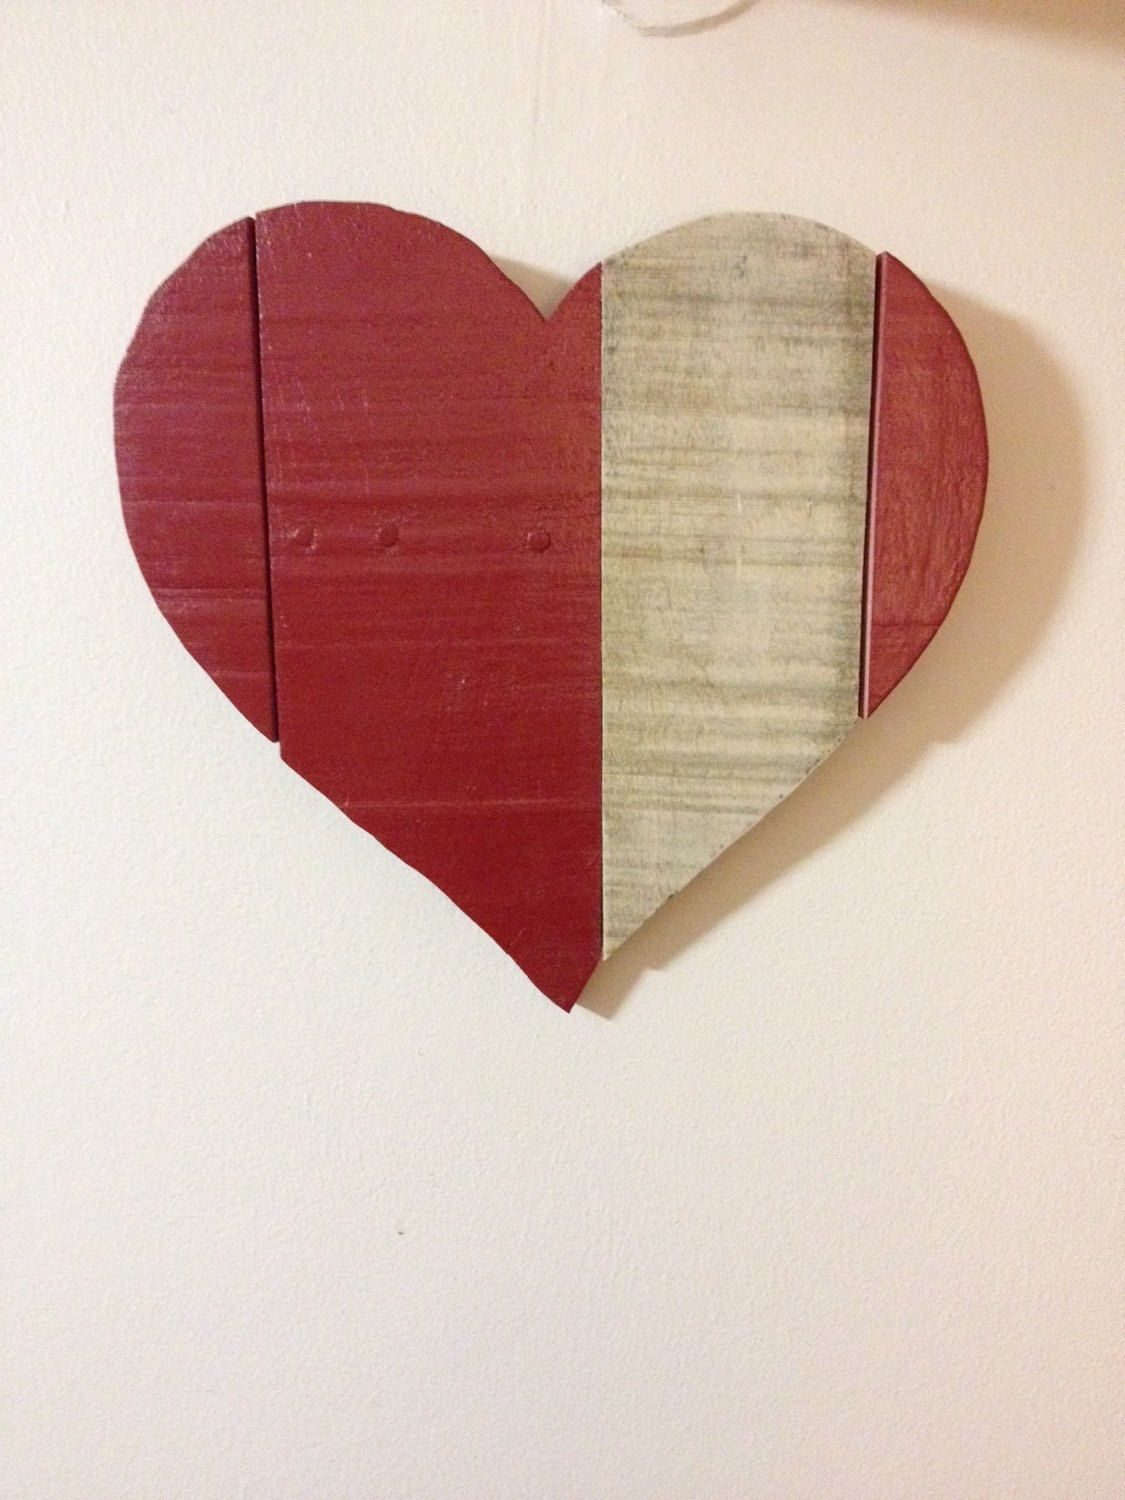 Rustic Pallet Wood Red Heart Wooden Heart Red Heart Wall Hanging Rustic Farmhouse Decor Pallet Wood Home Decor Wooden Hearts Wood Home Decor Wood Pallets